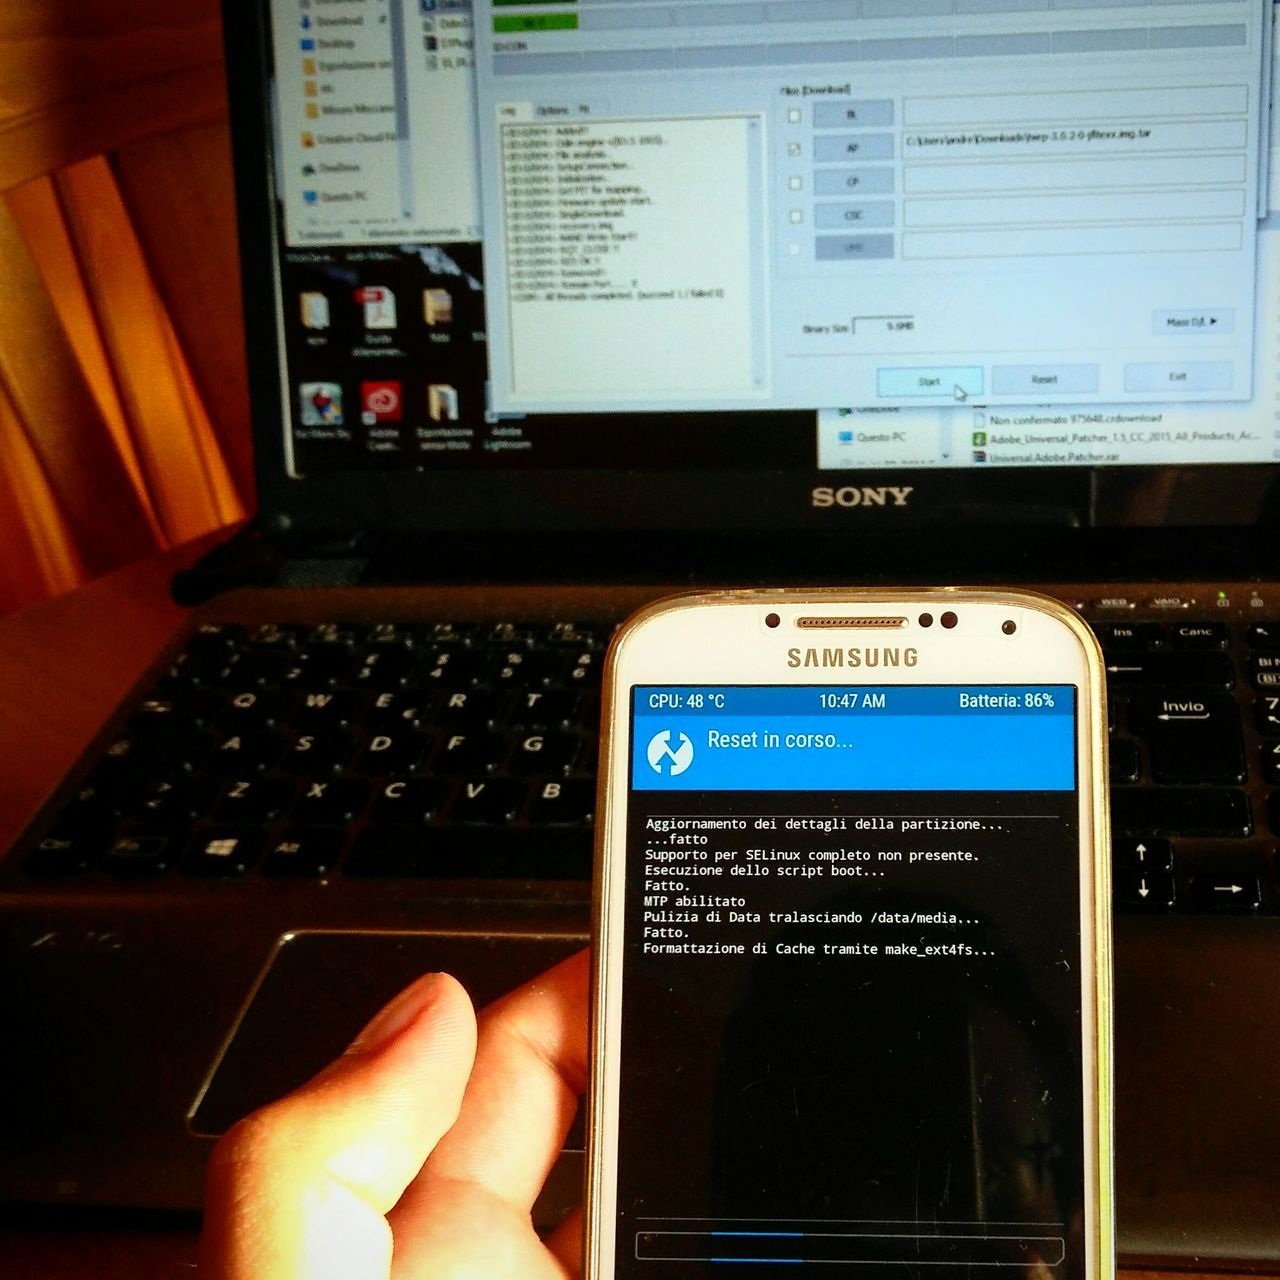 Android Modding Androidmodding Smartphone Technology Cyanogen Cyanogenmod